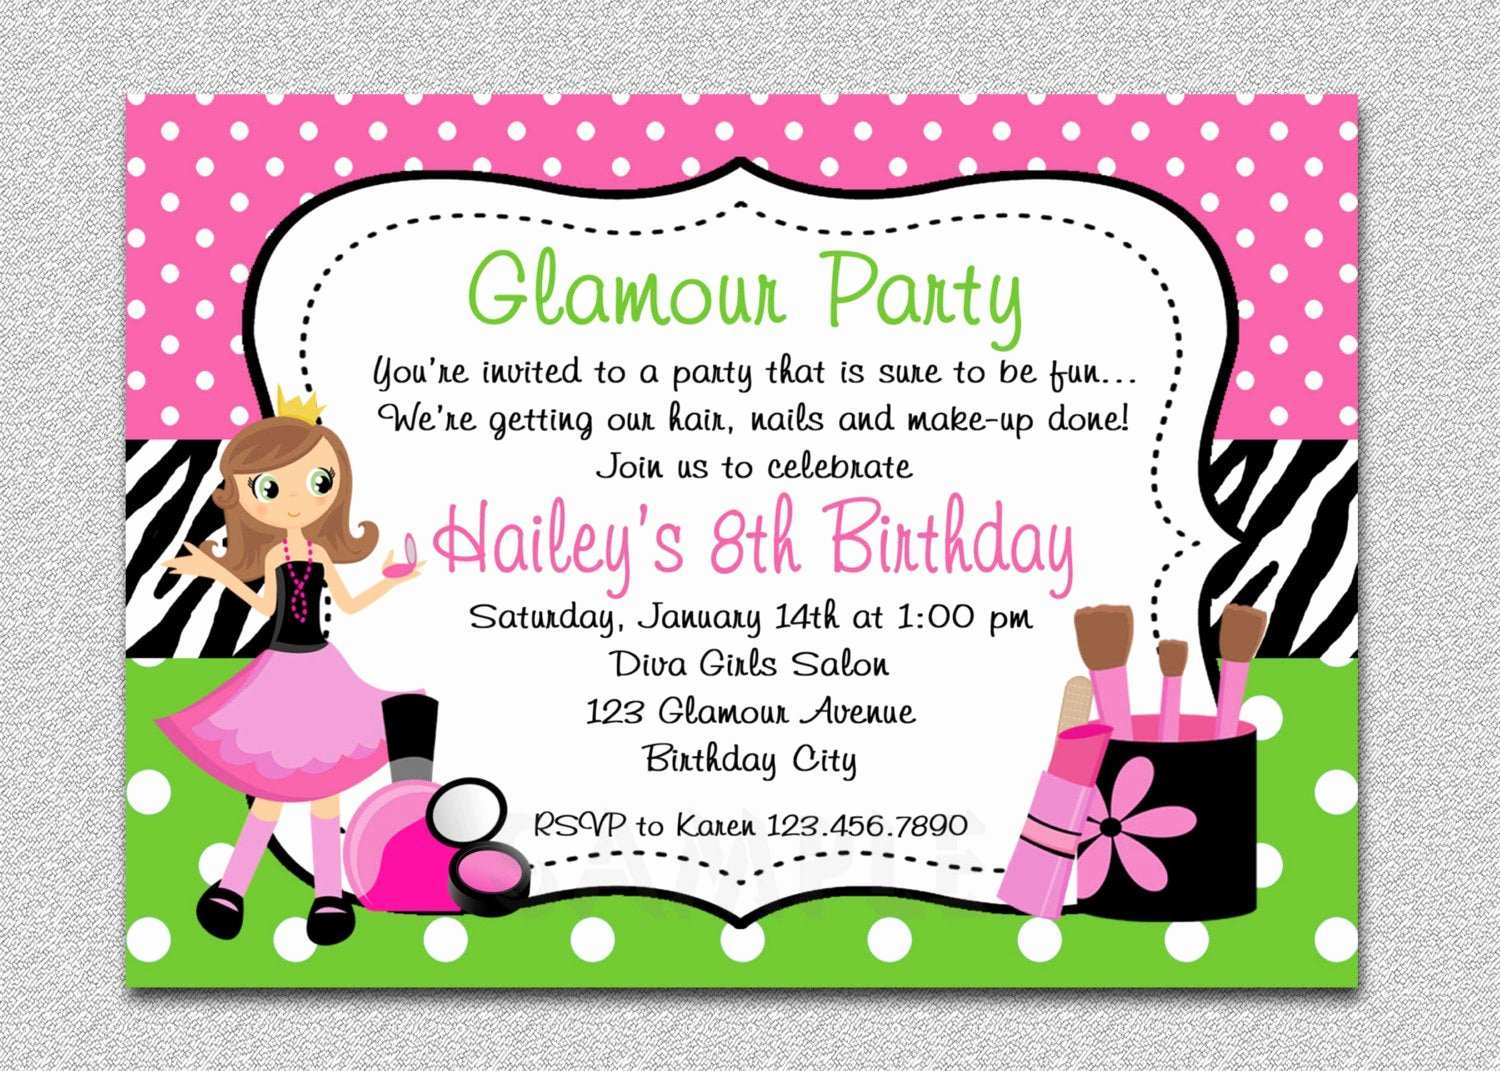 Birthday Invitations for Women Awesome Glamour Girl Birthday Spa Invitation Glamour Girl Birthday